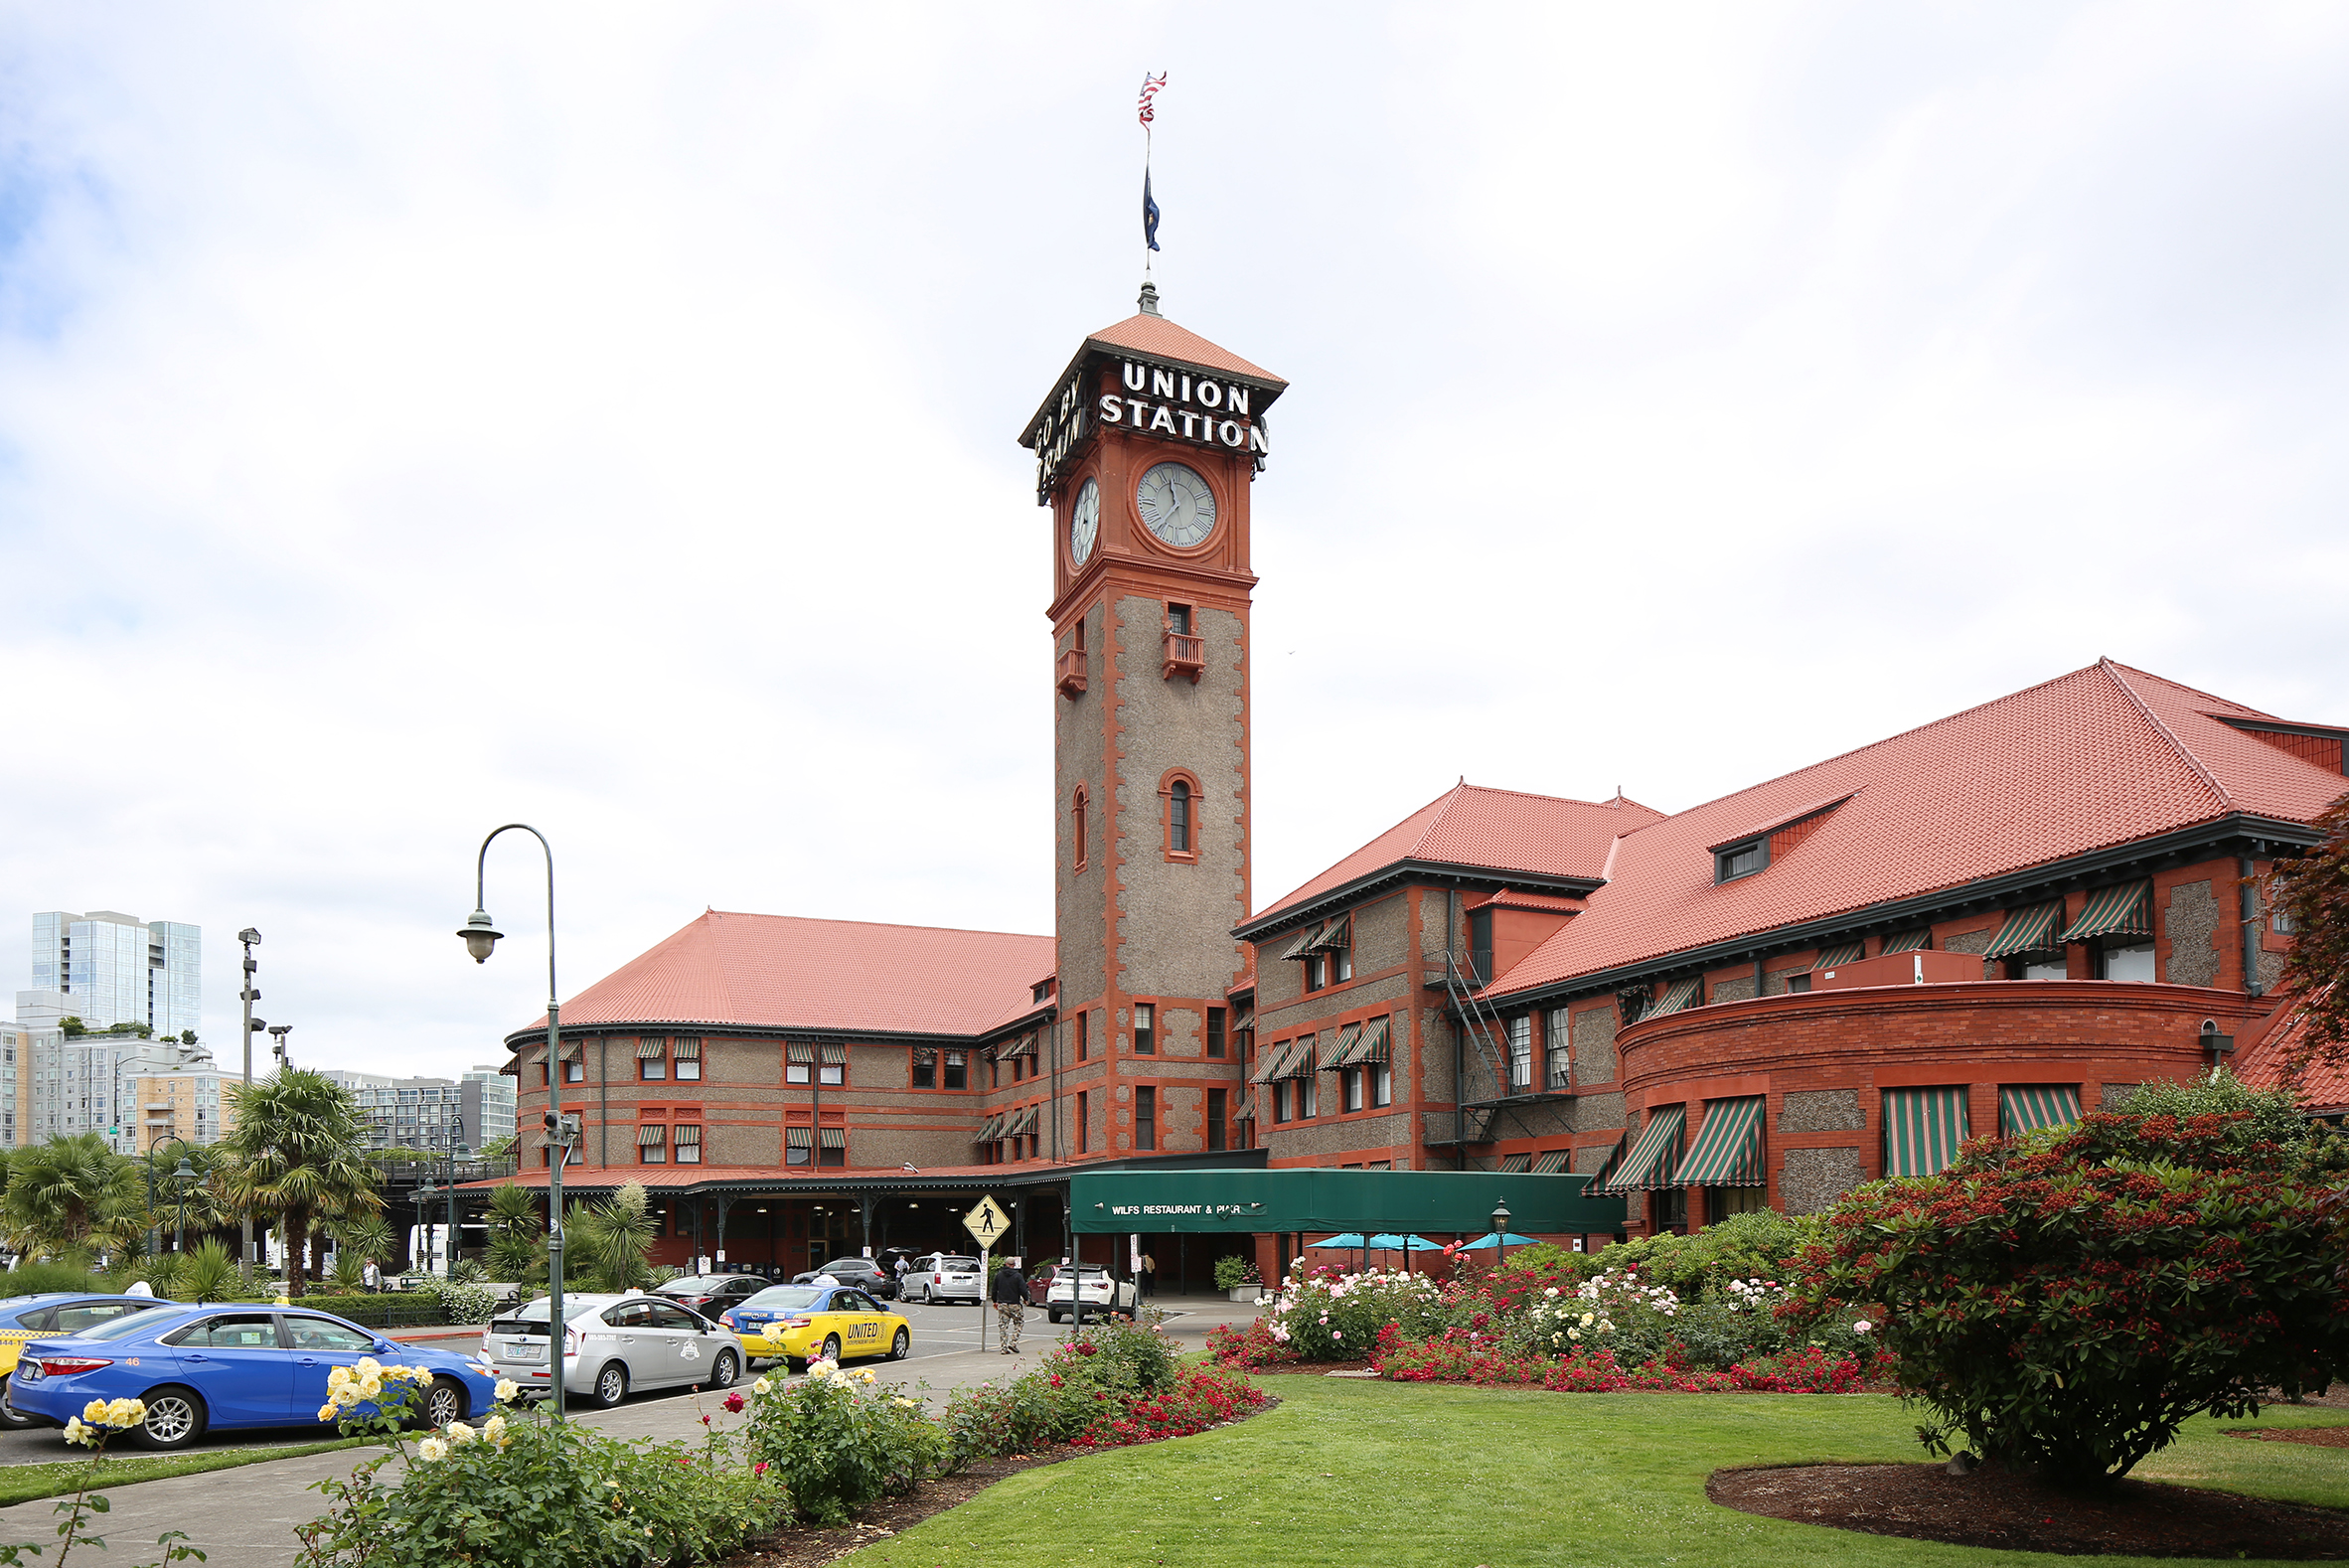 Exterior of URM Building Portland Union Station with Taxis and Lawn